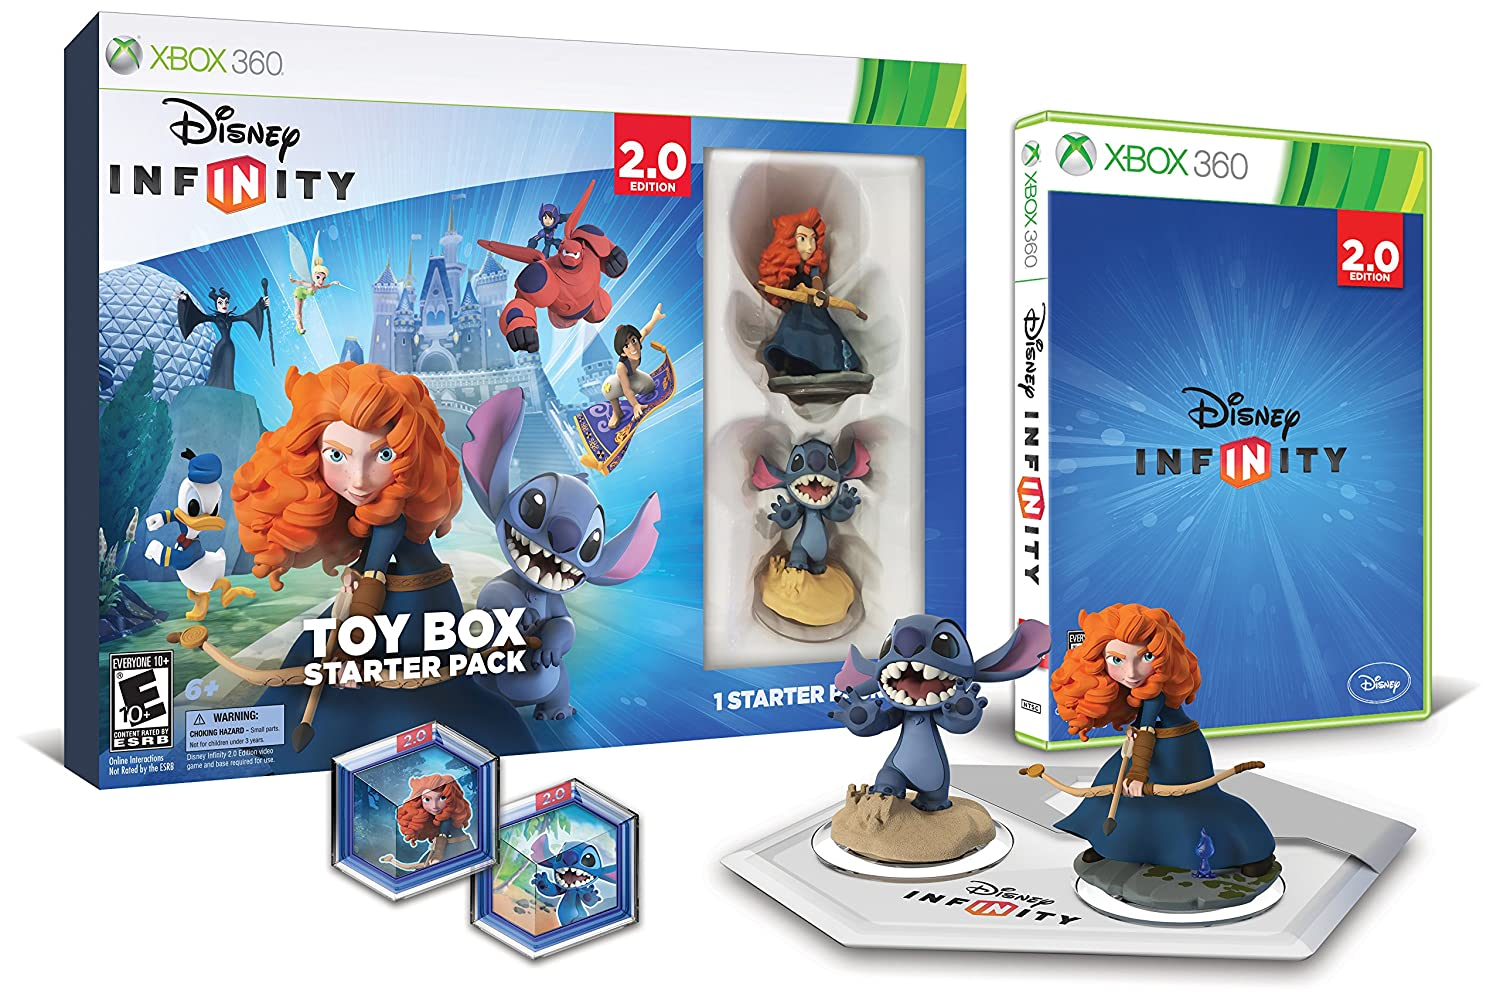 Disney Infinity Toy Box Starter Pack 2.0 Edition